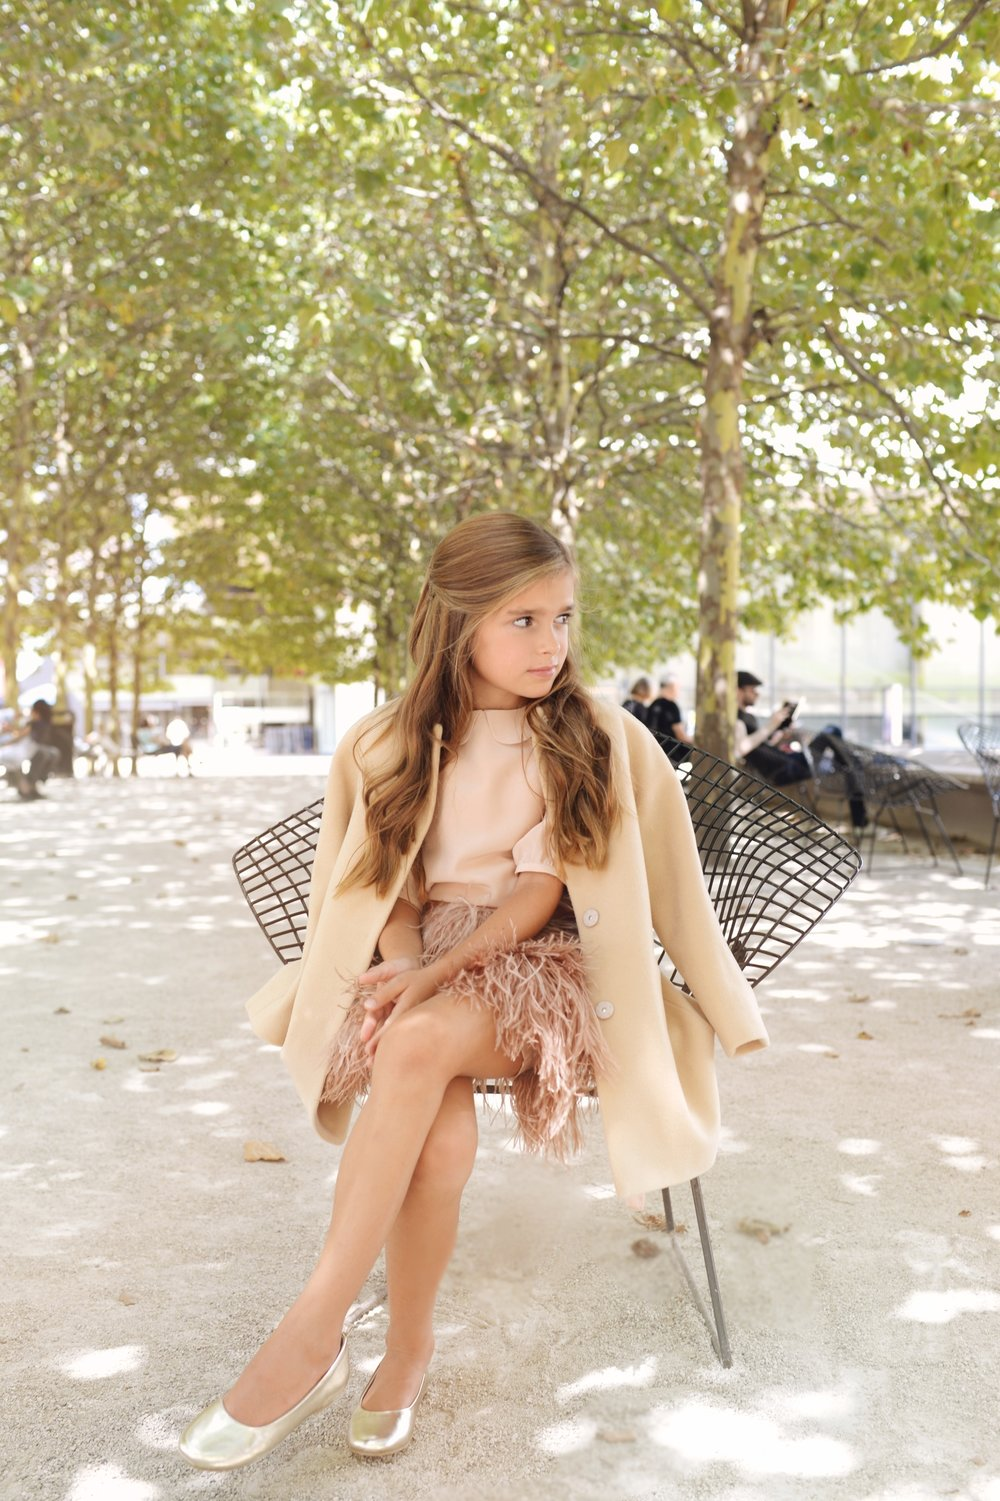 Enfant+Street+Style+by+Gina+Kim+Photography+Pale+Cloud-4.jpeg